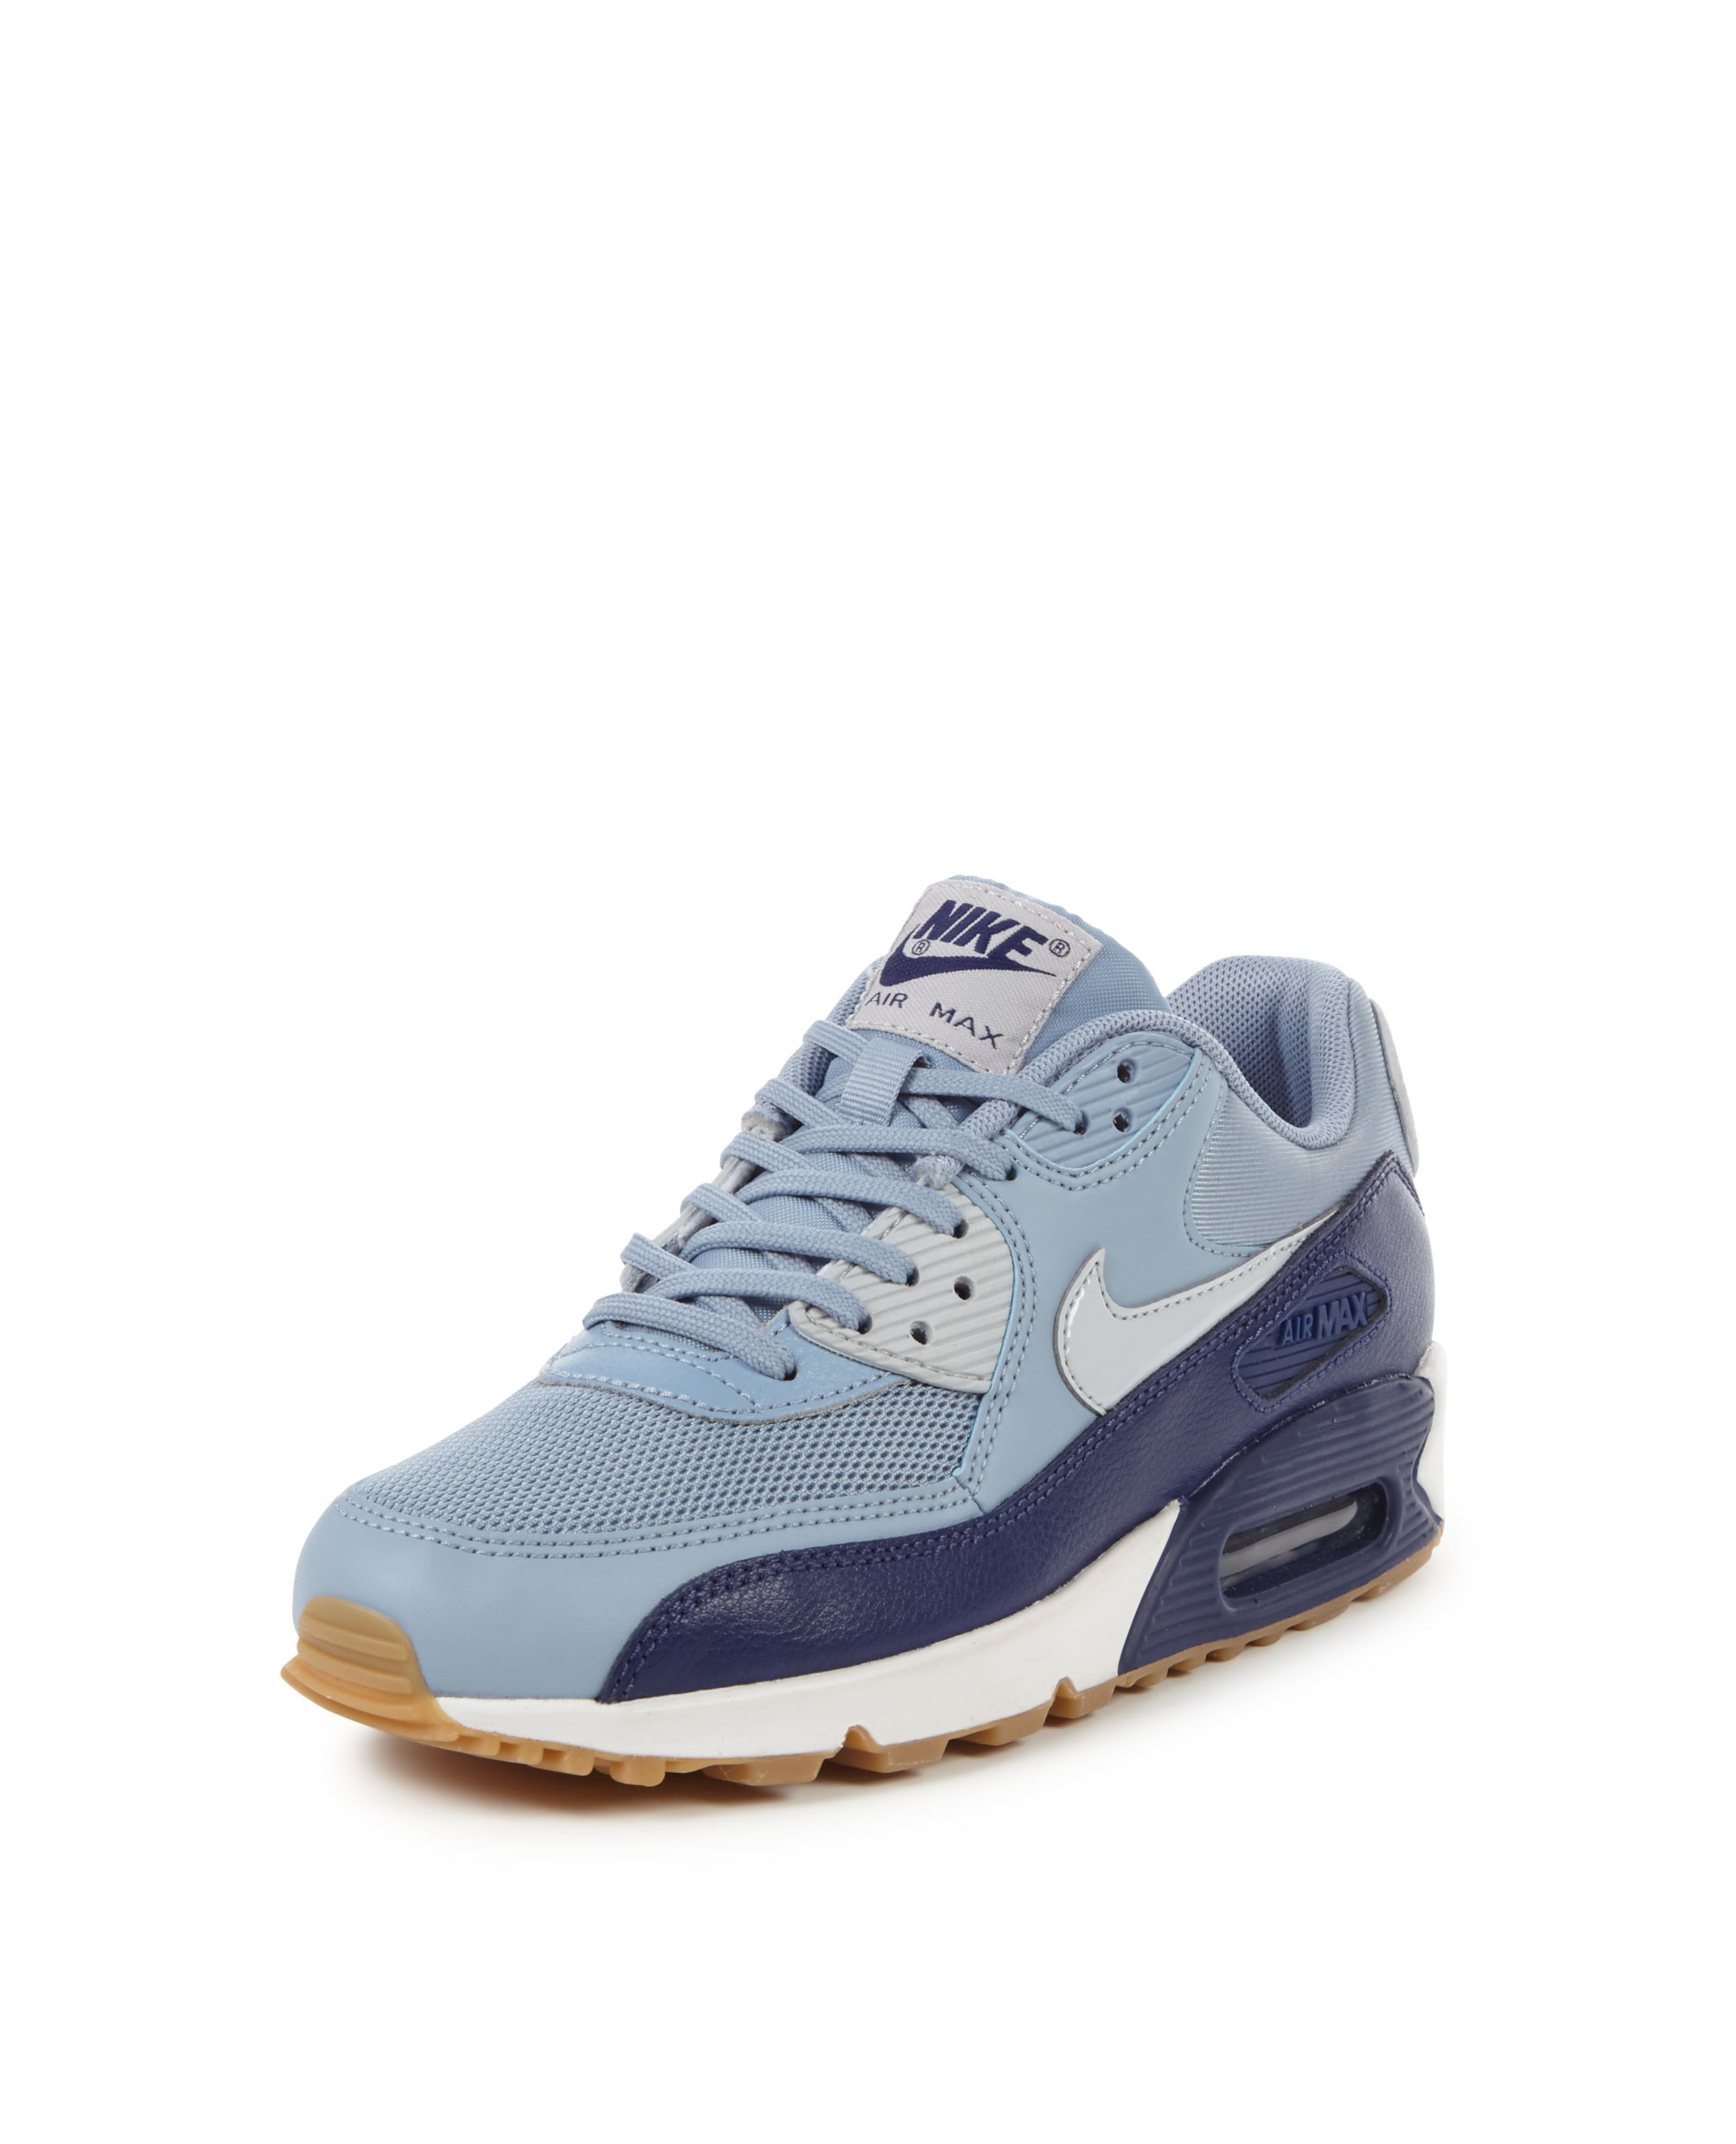 Nike Air Max 90 Essential Womens Trainers